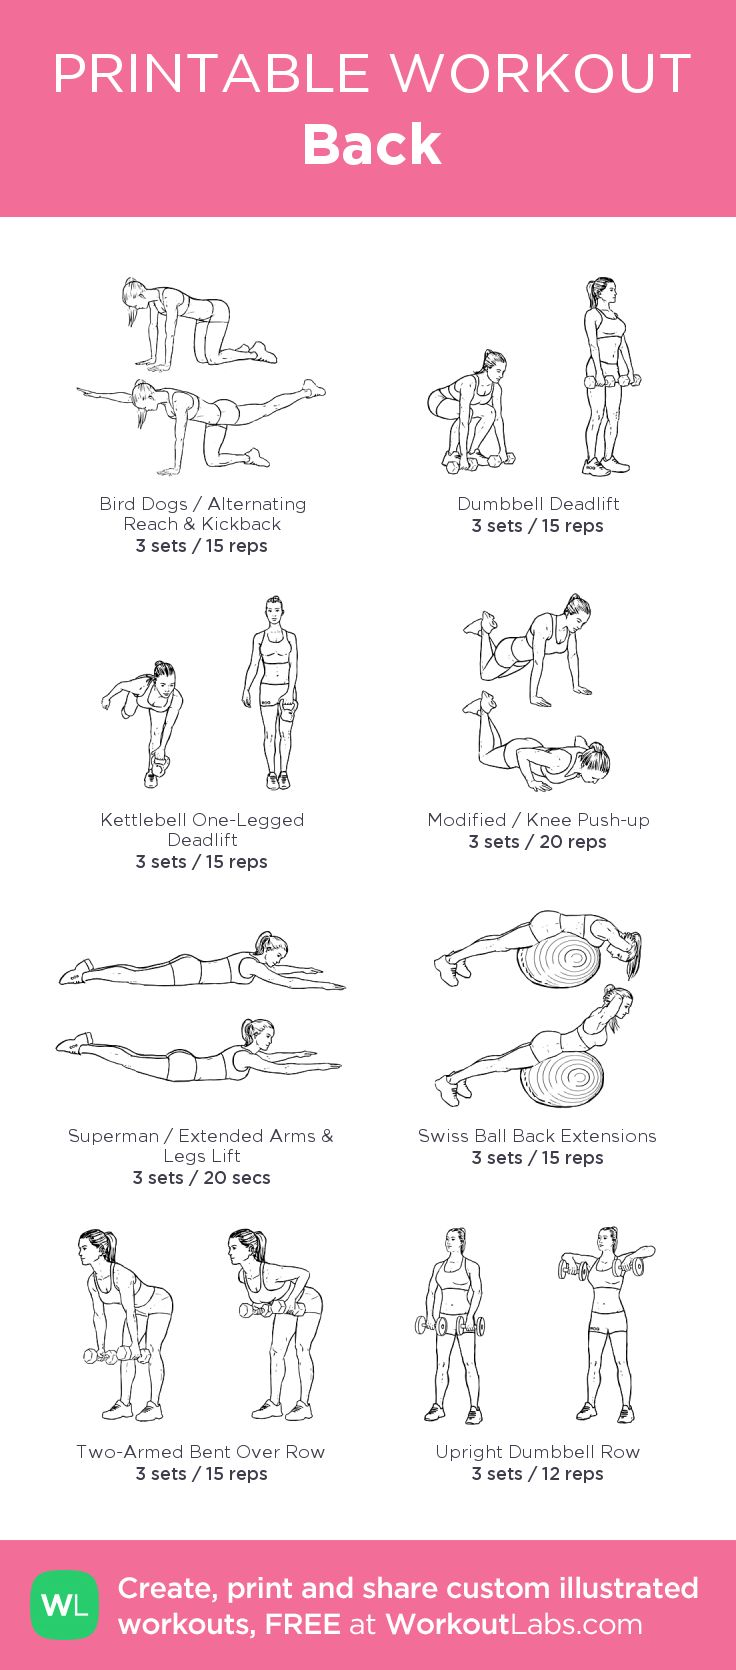 Back –my custom workout created at WorkoutLabs.com